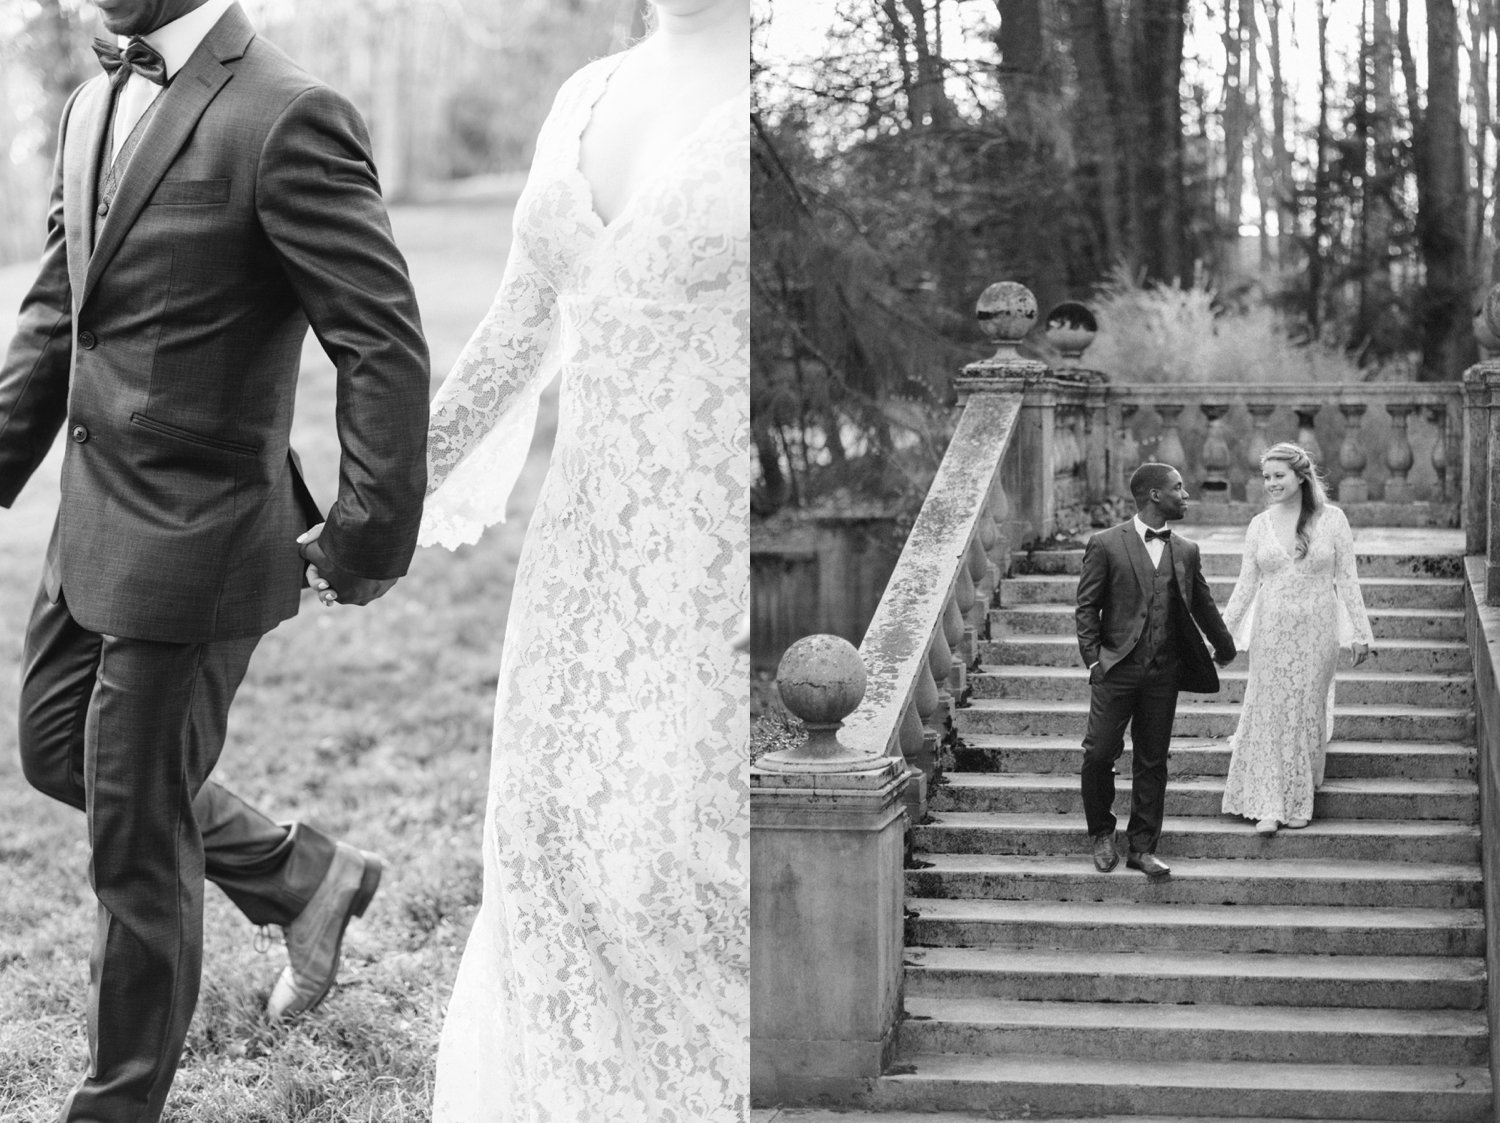 classic-romantic-wedding-maryland-photographer-strong-mansion-sentimental-ceremony-editorial-portraits-fine-art-bw-stairs